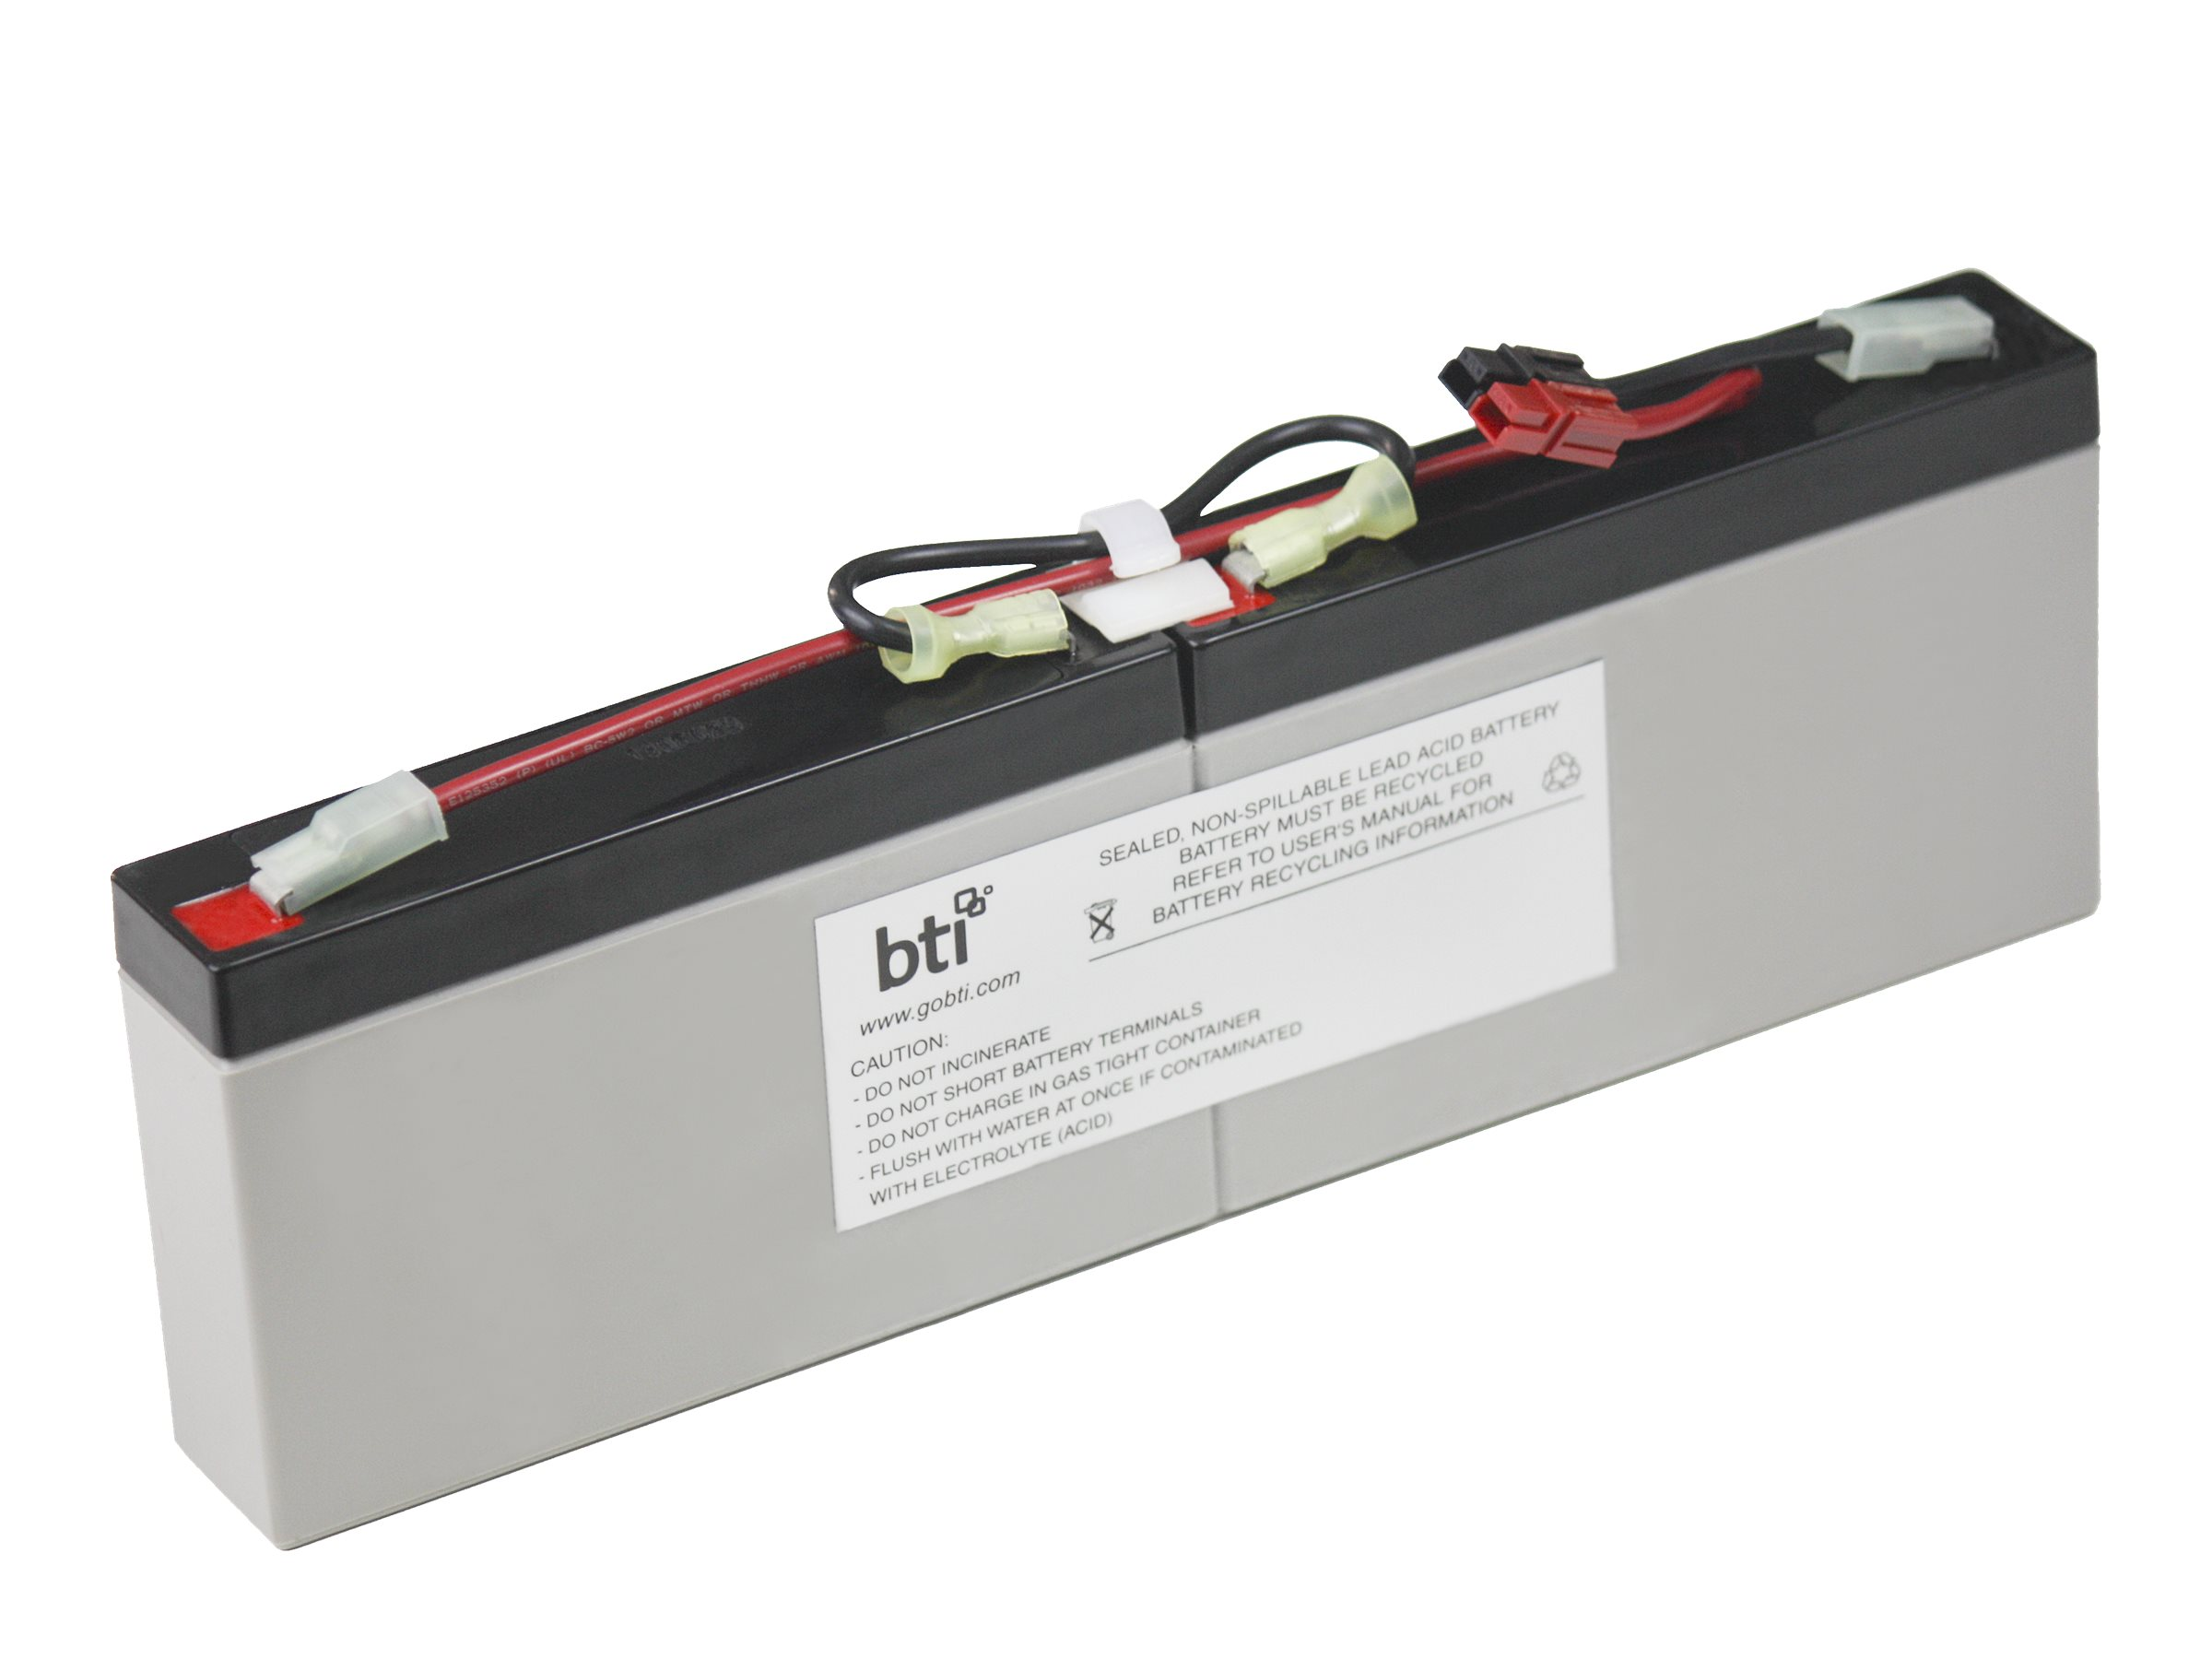 BTI Replacement Battery #18 for APC - UPS battery - lead acid